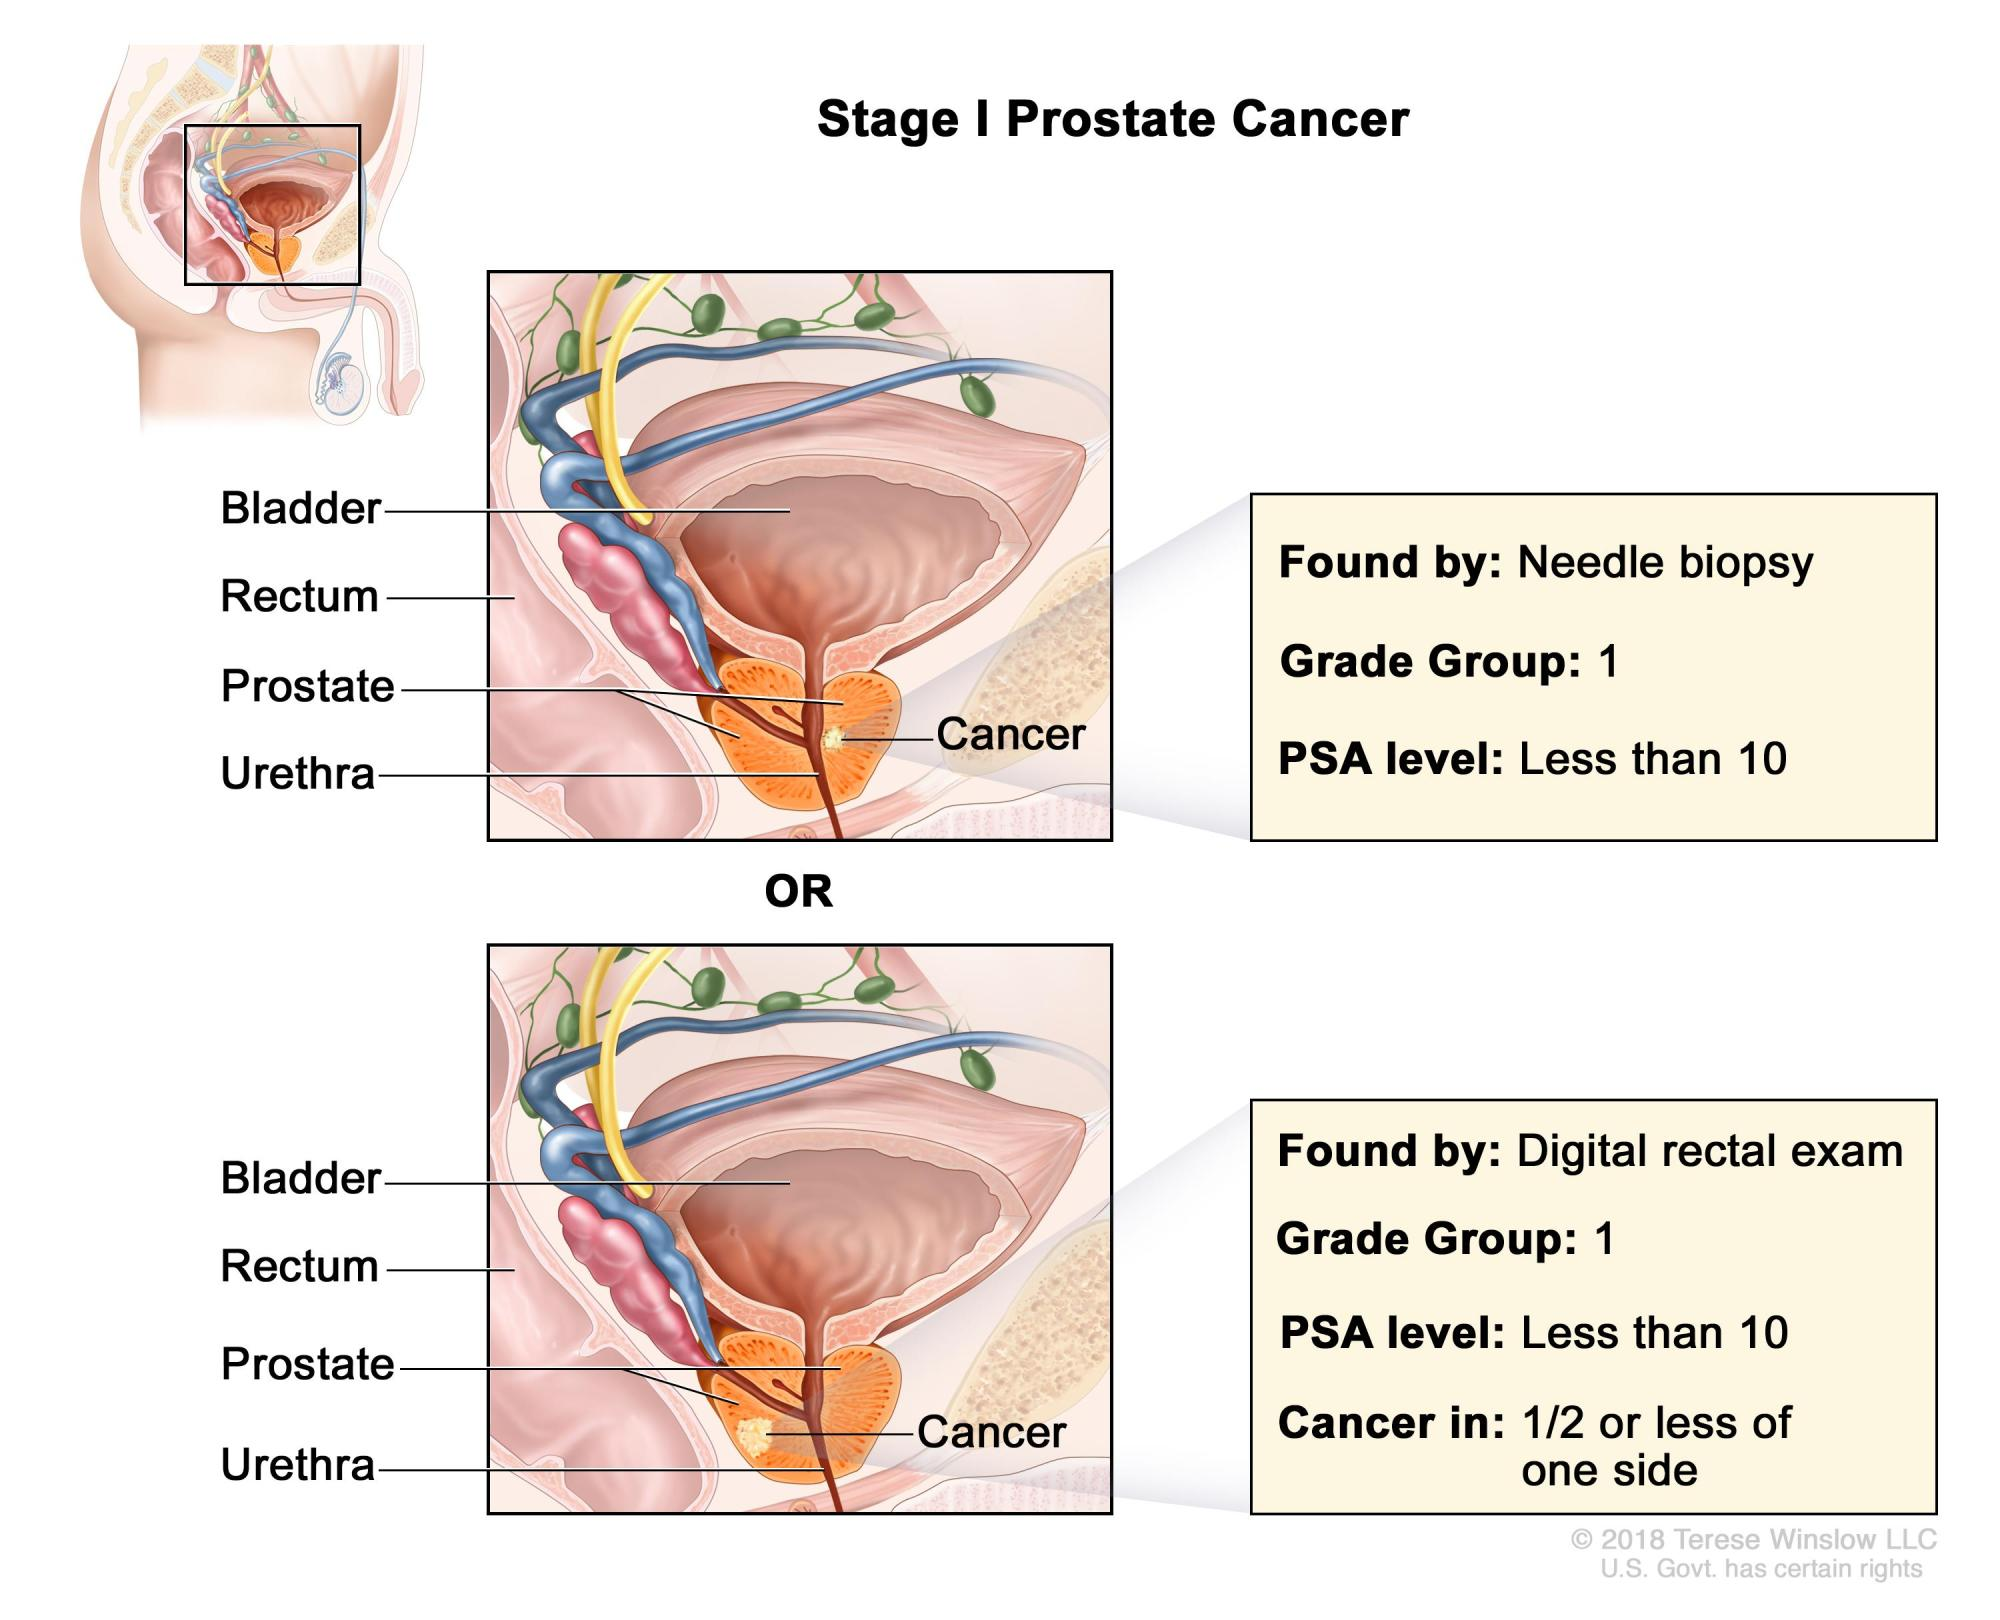 hight resolution of stage i prostate cancer cancer is found in the prostate only the cancer is not felt during a digital rectal exam and is found by needle biopsy done for